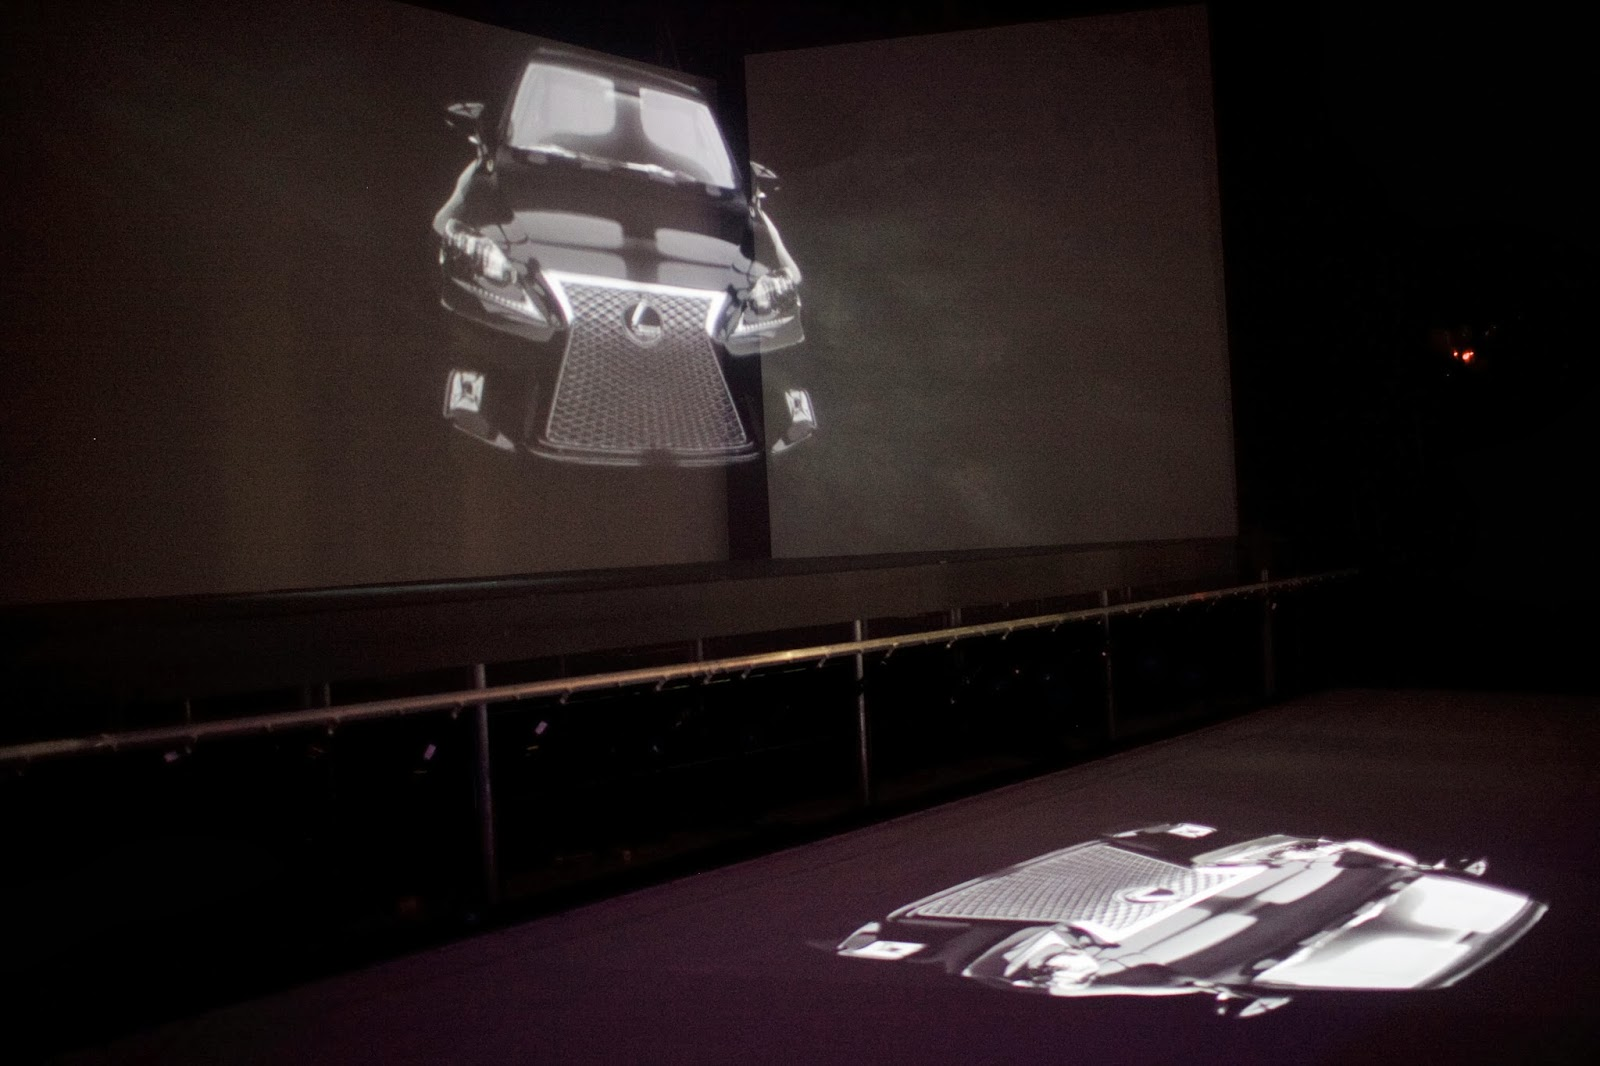 Lexus Design Disrupted 3D Holographic Projection